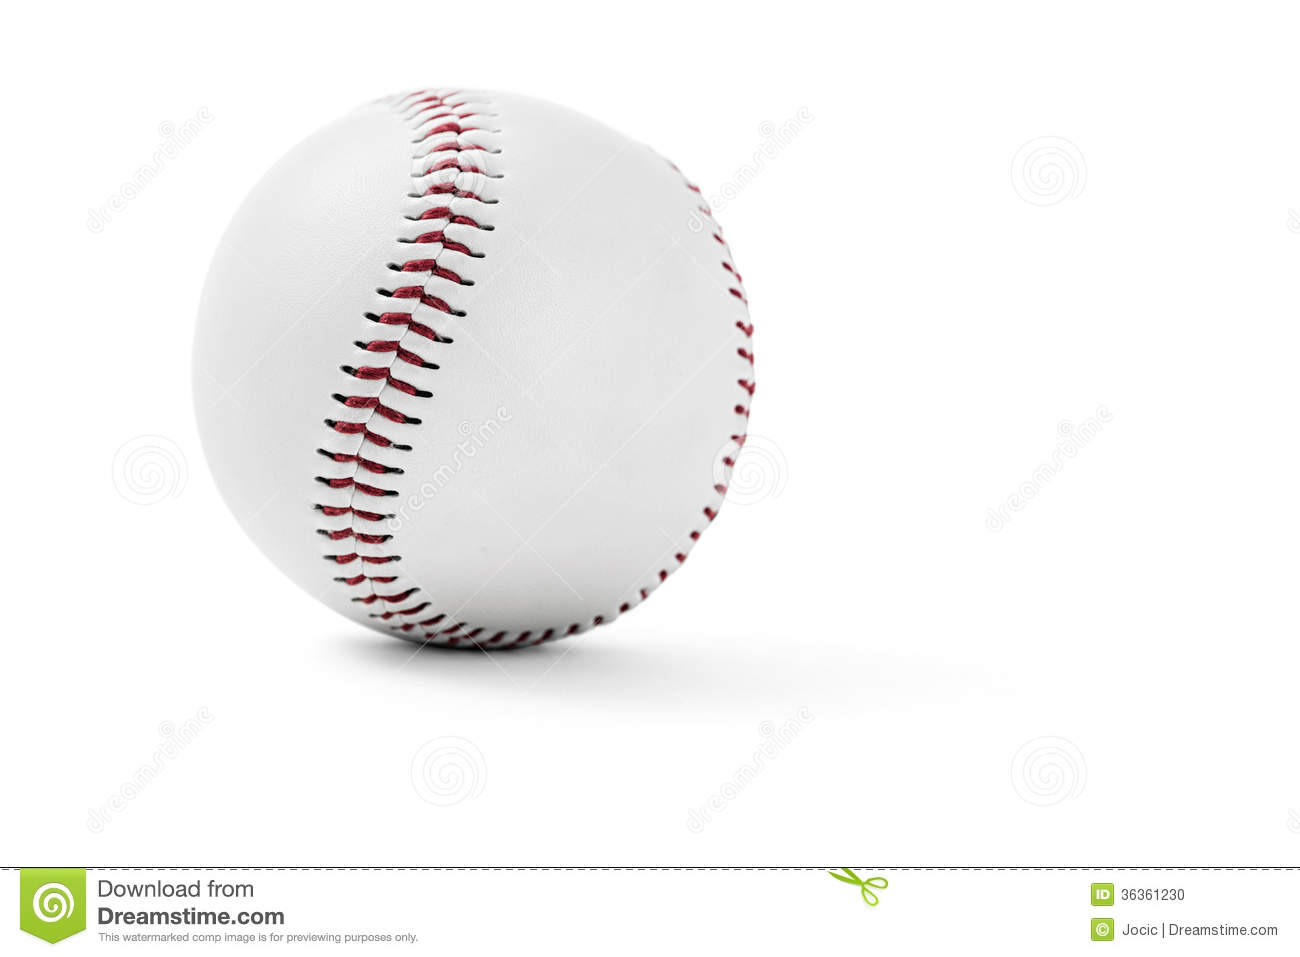 Baseball on white background with clipping path.